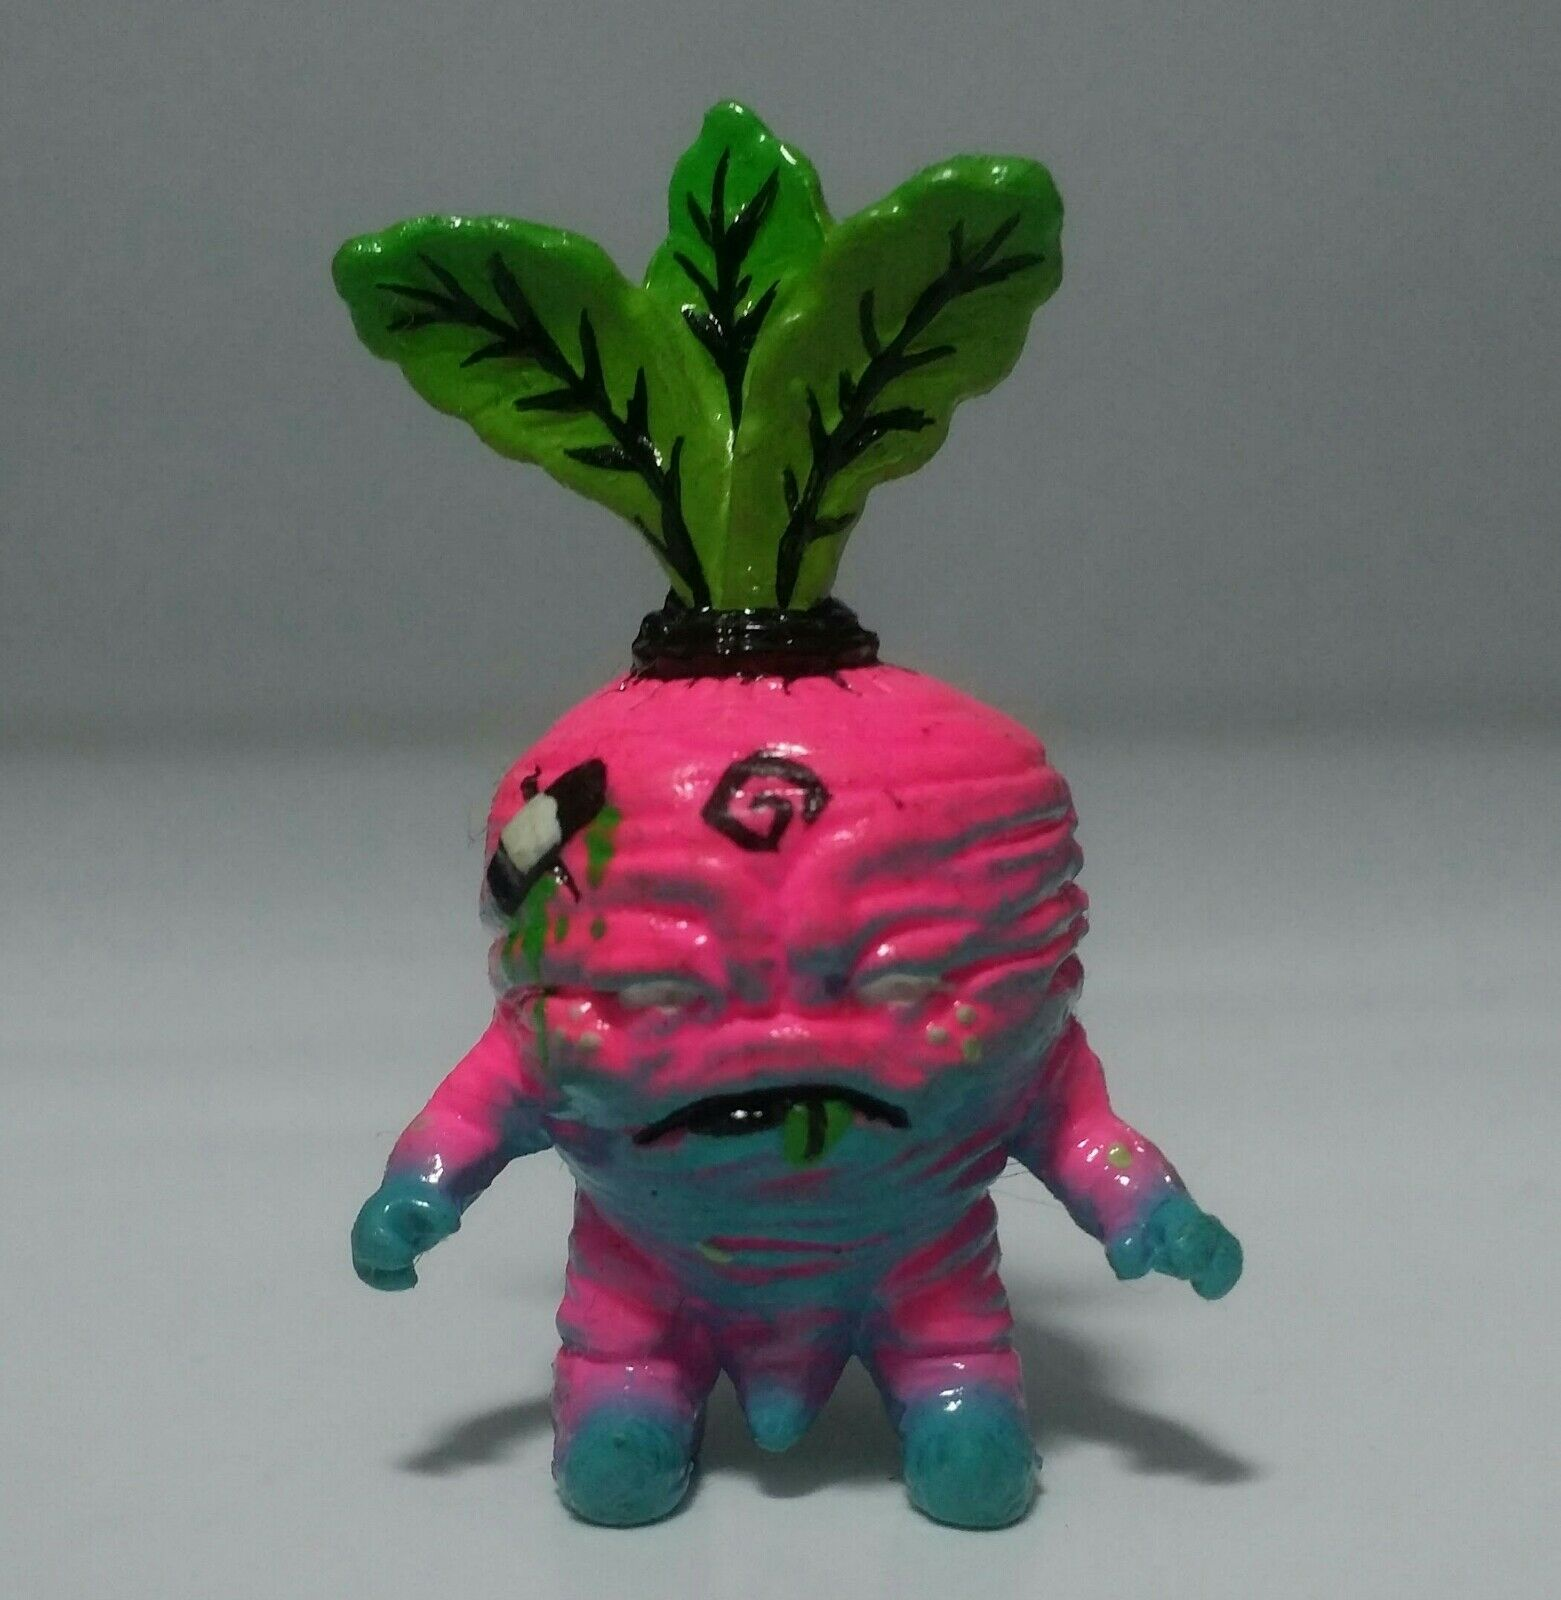 Ardabus Rubber - Deadbeet 1.5  by Scott Tolleson LE 20 Kidrobot